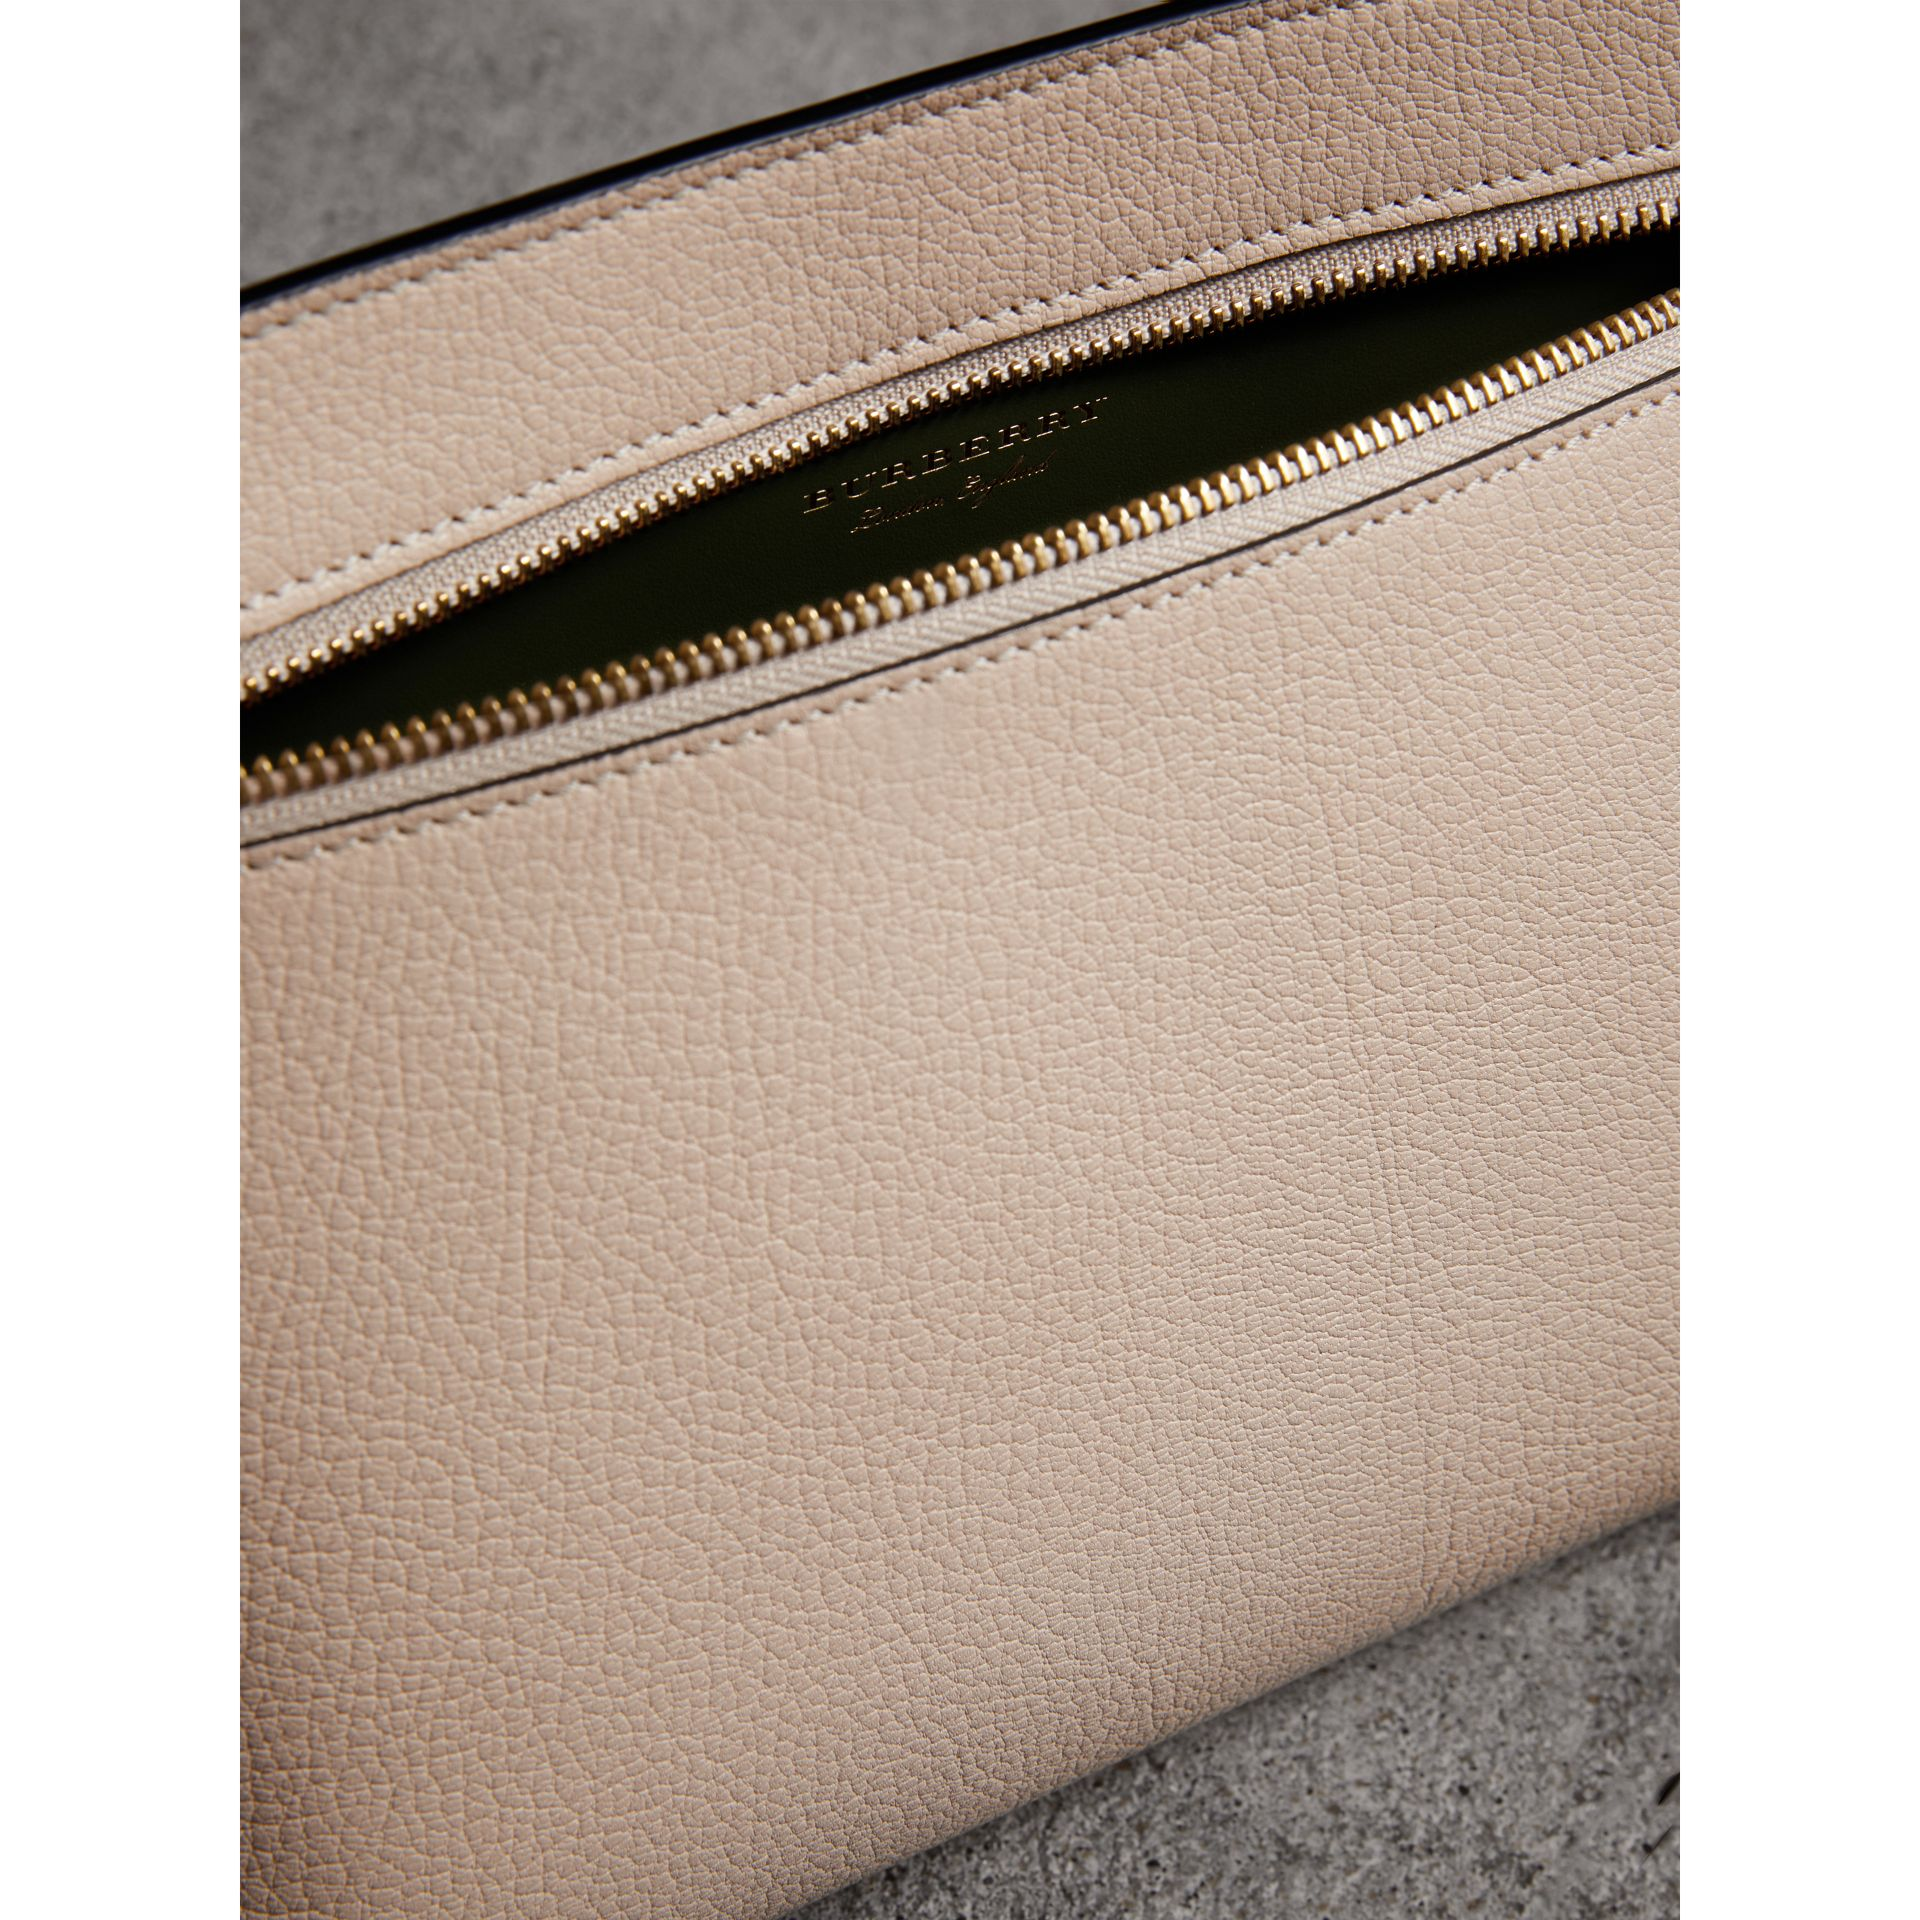 Grainy Leather Wristlet Clutch in Stone - Women | Burberry United Kingdom - gallery image 6